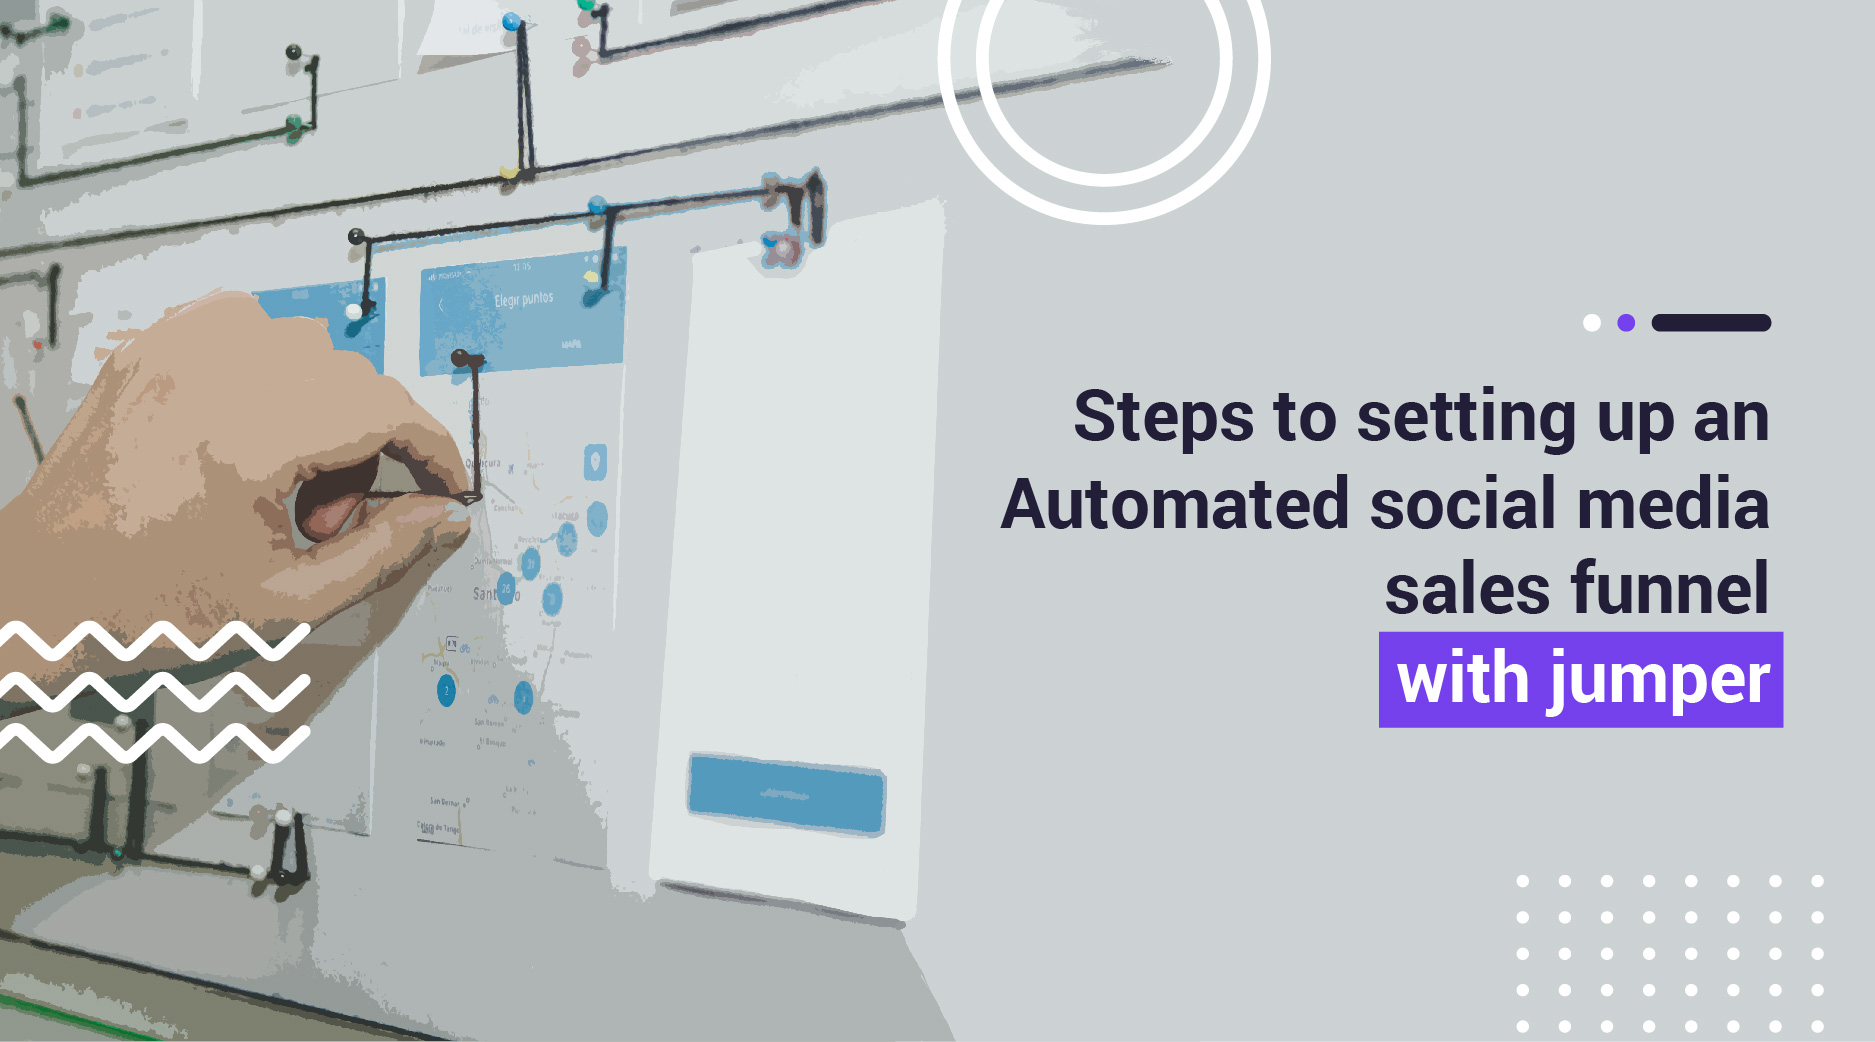 Automated, social media, sales funnel